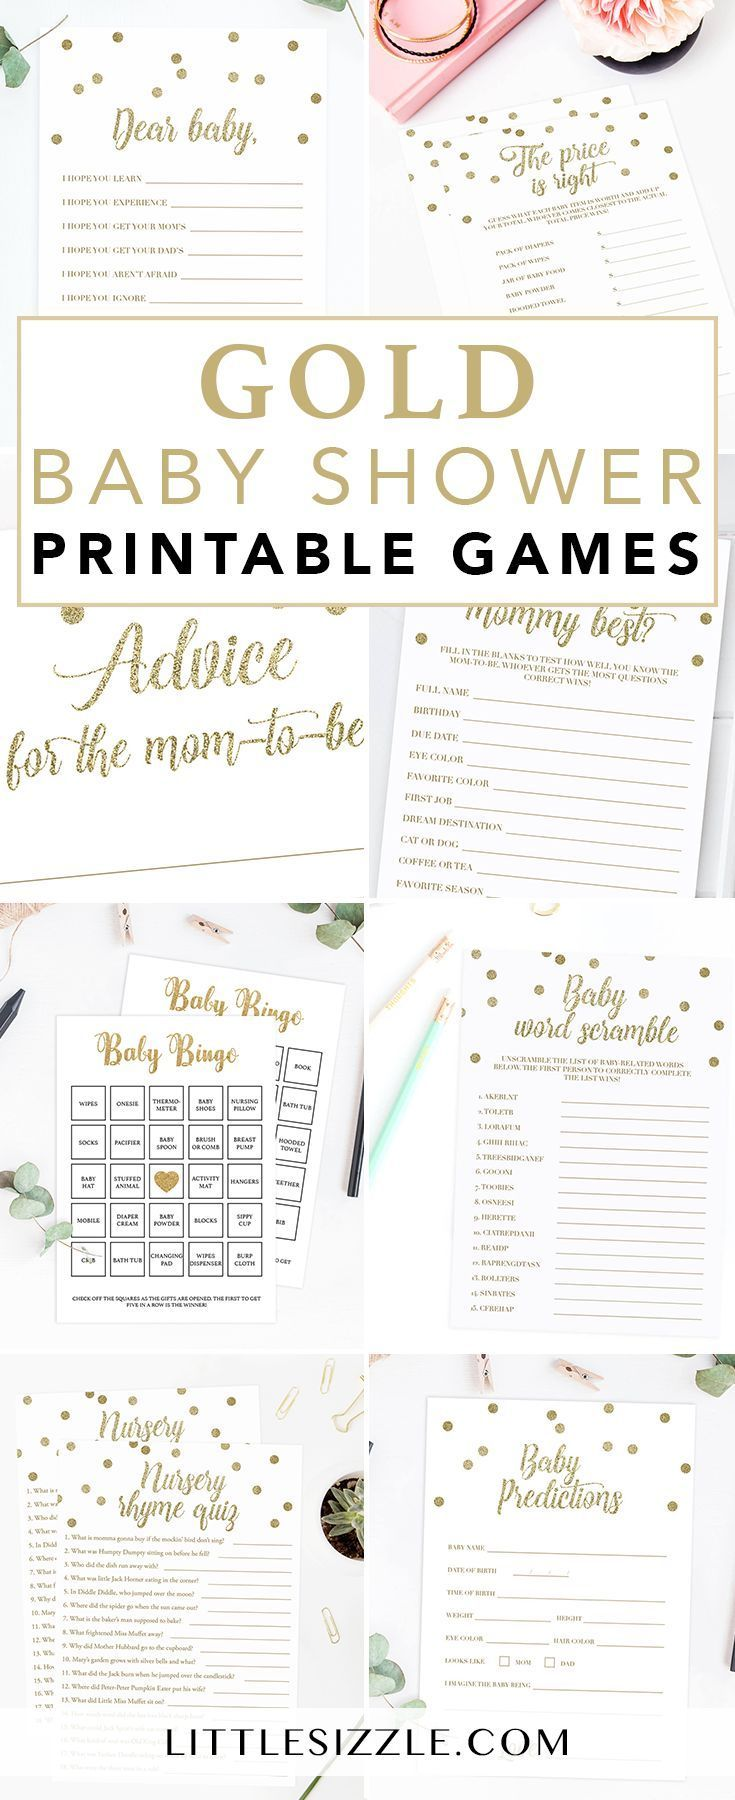 Gold Baby Shower Ideas by LittleSizzle. Click through to instantly download your…